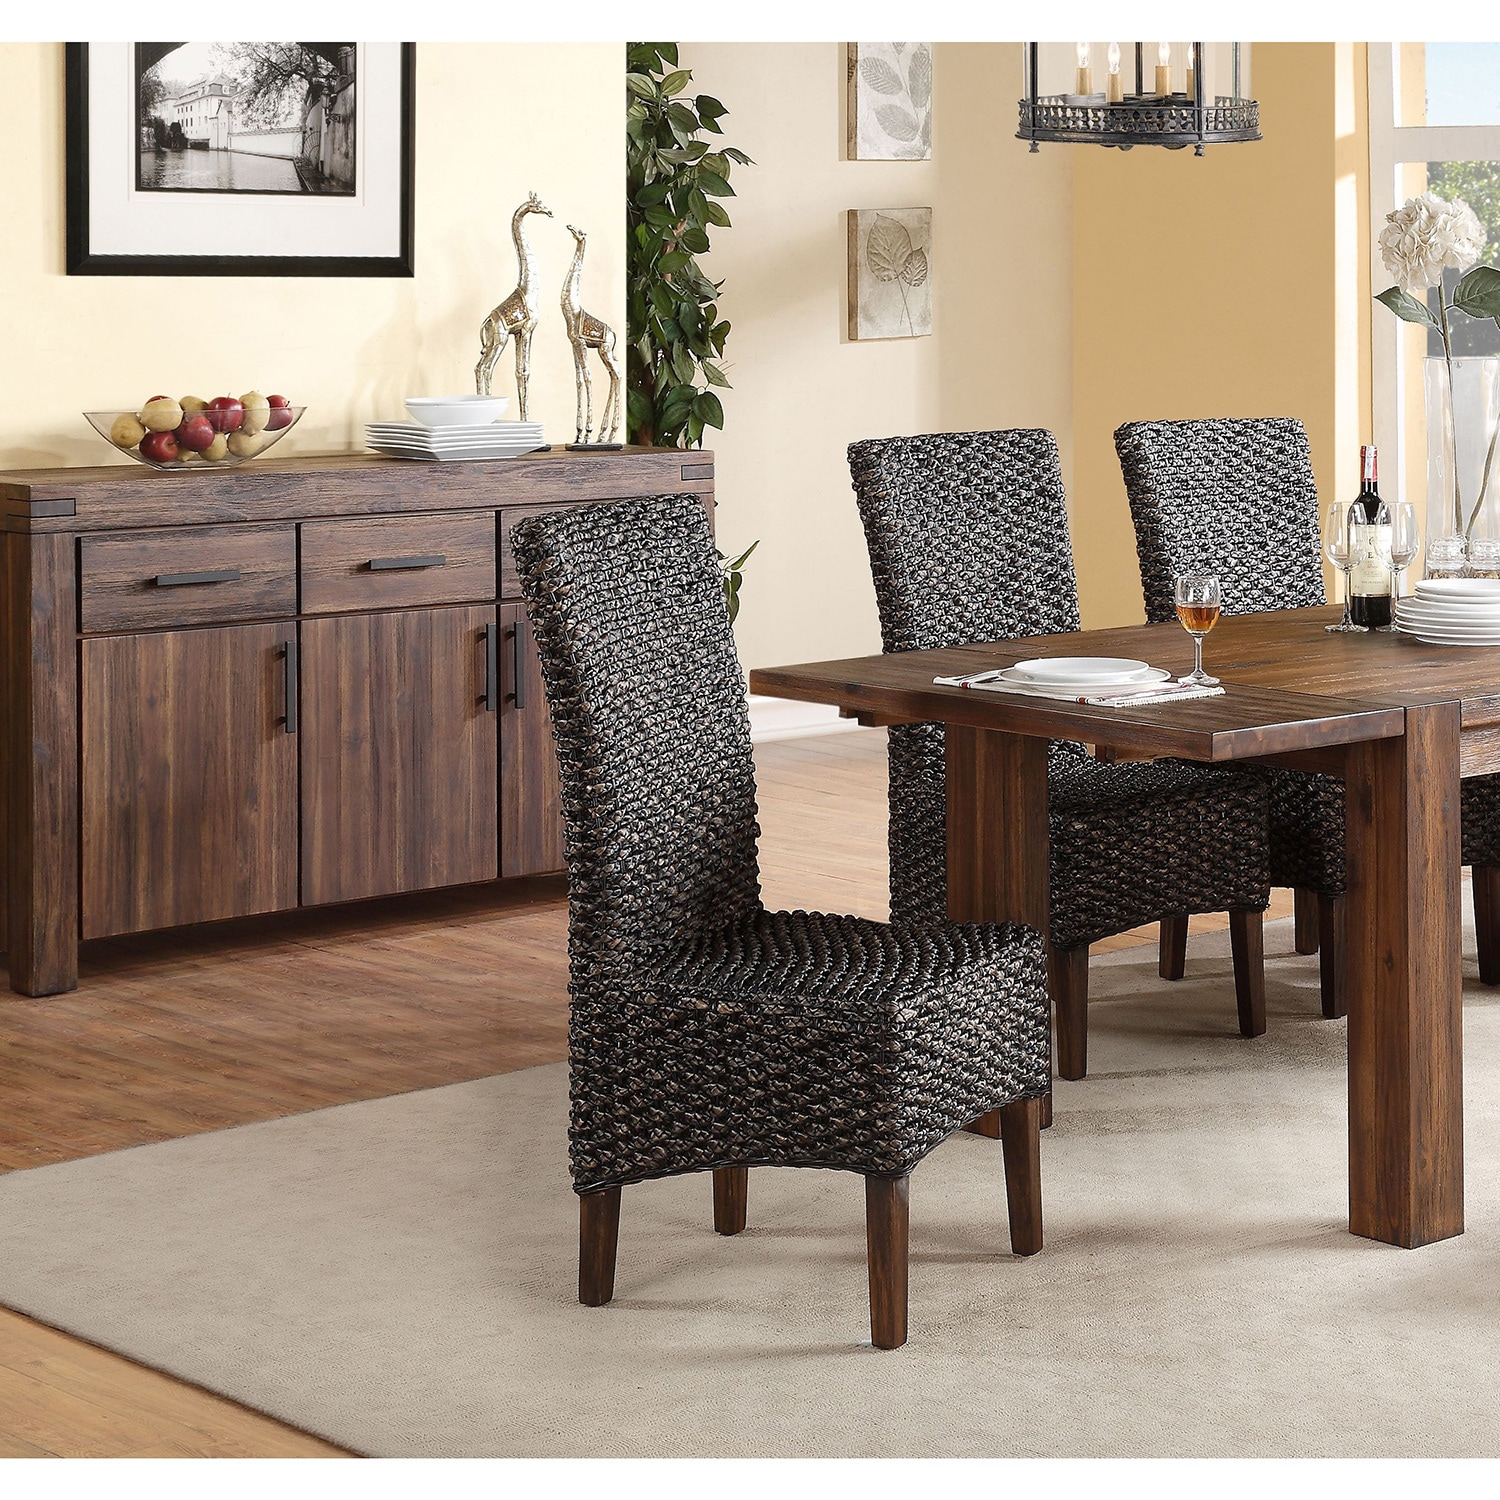 Seagrass Dining Chair Seagrass Dining Chair Set Of 2